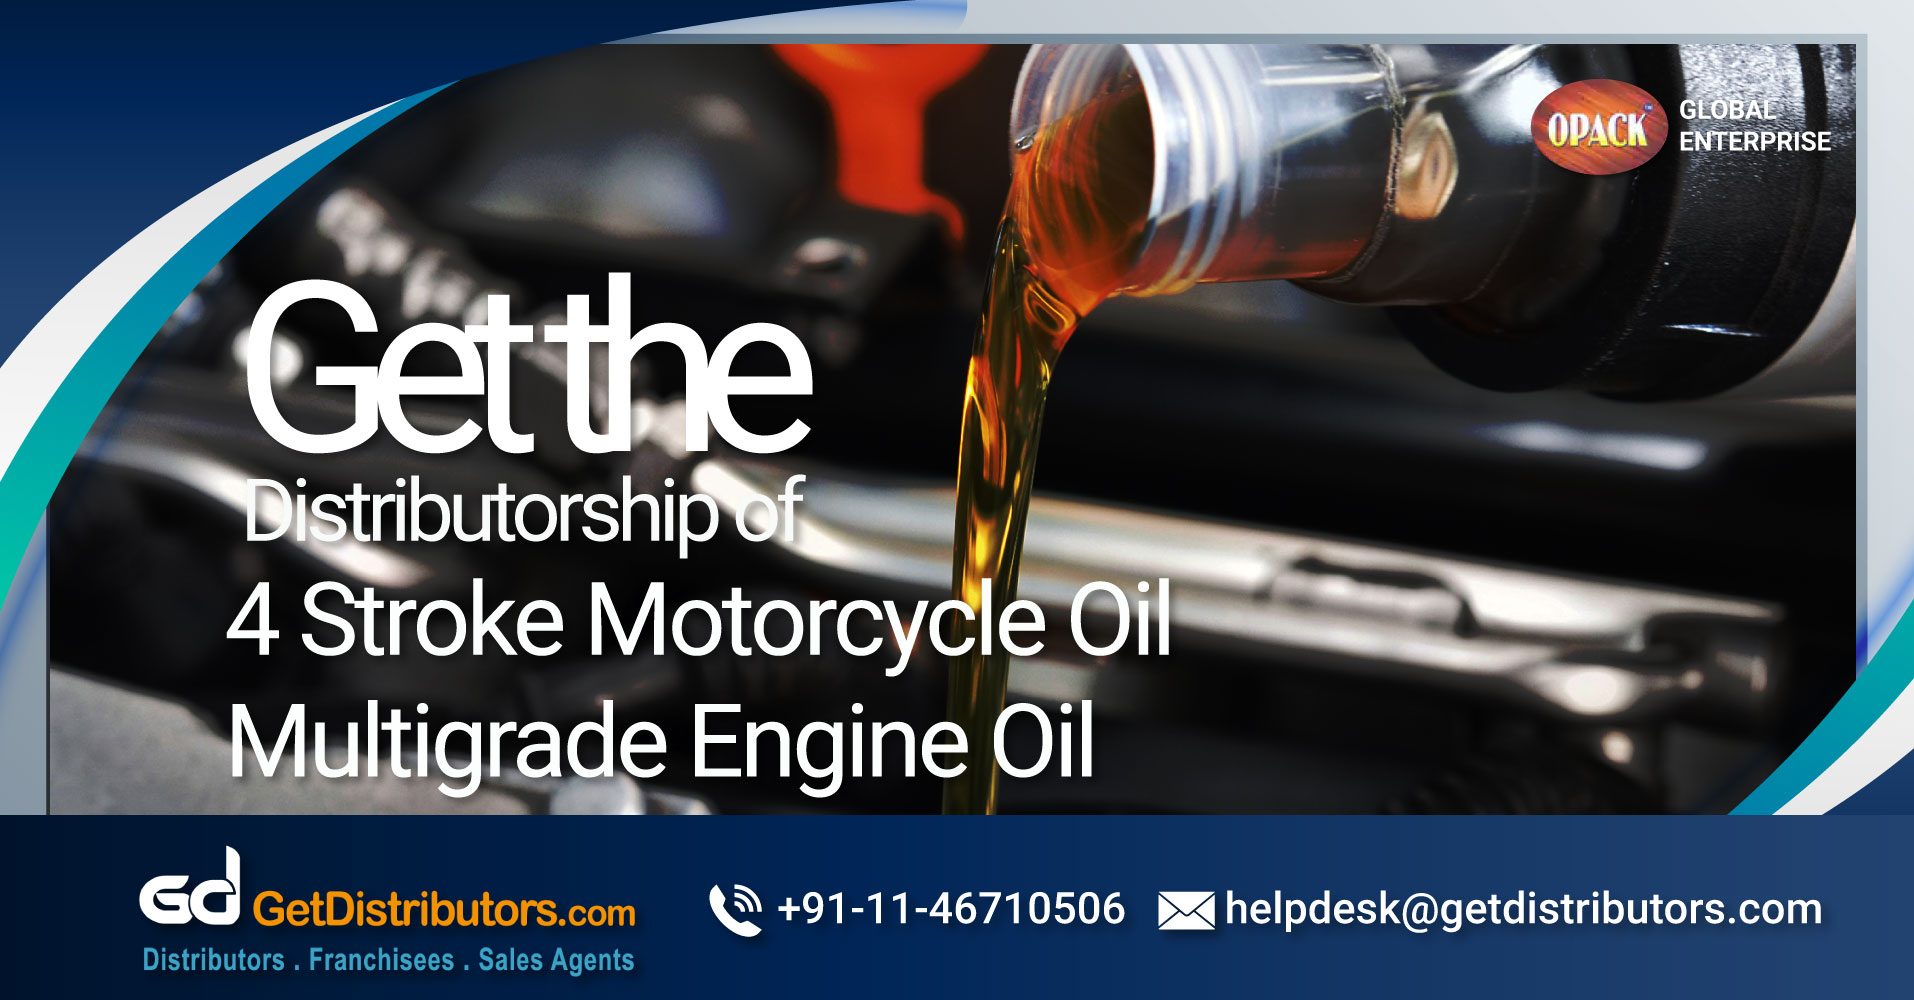 Superior Quality Engine Oils And Lubricants At Reasonable Prices